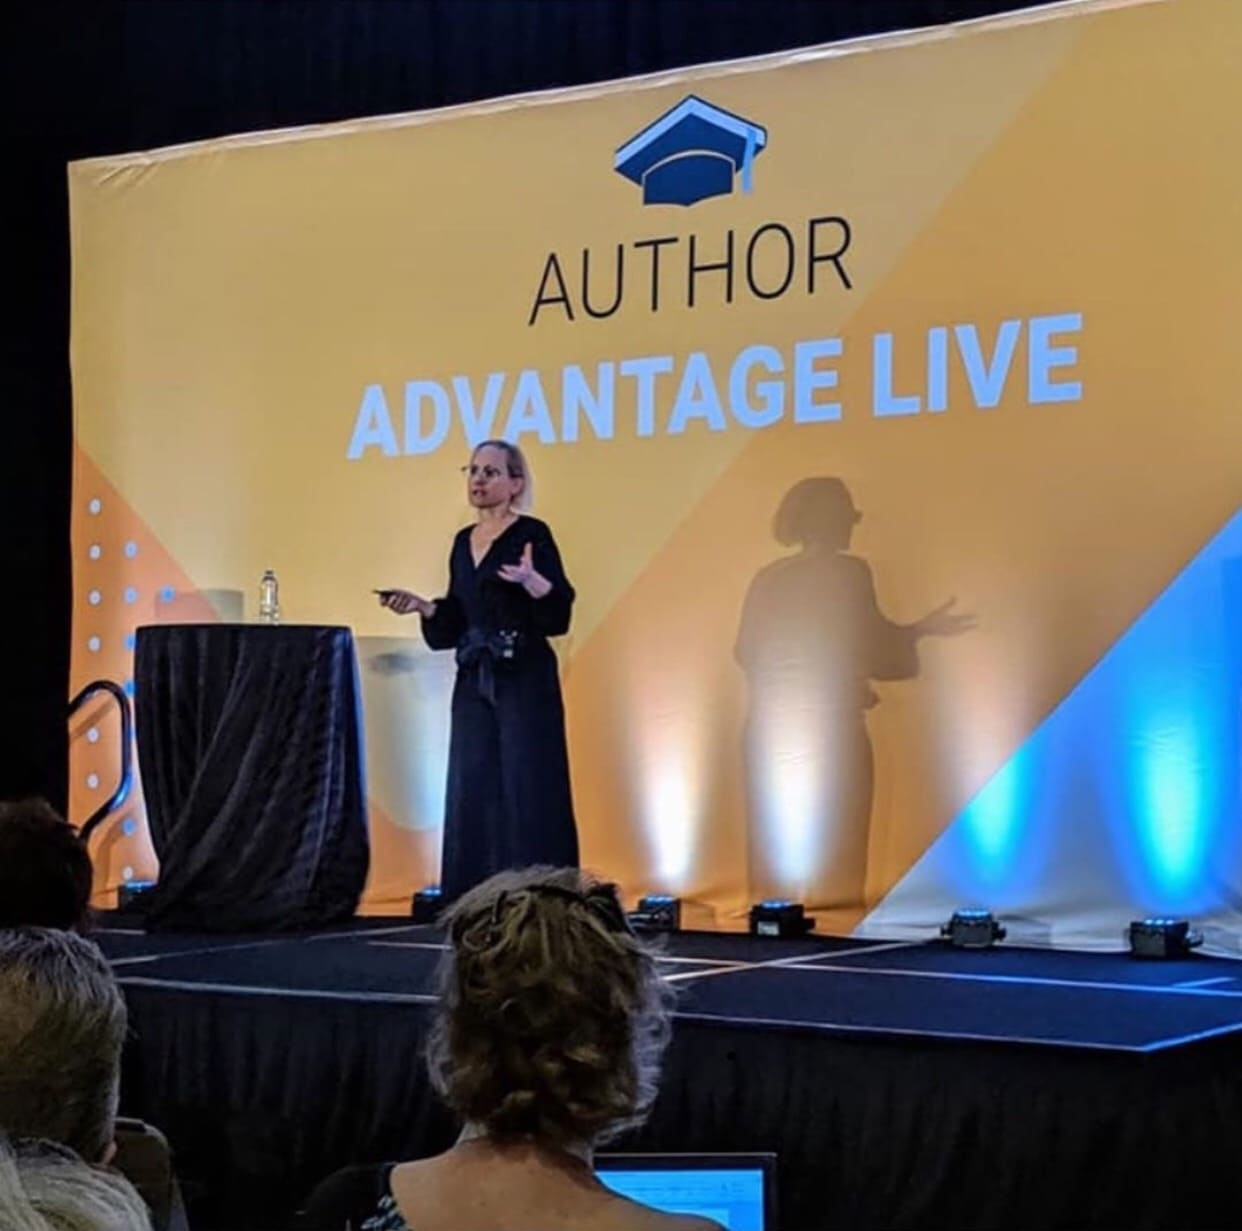 Author Advantage Live-Nancy Hillis- The Hero's Journey in Art and Life.